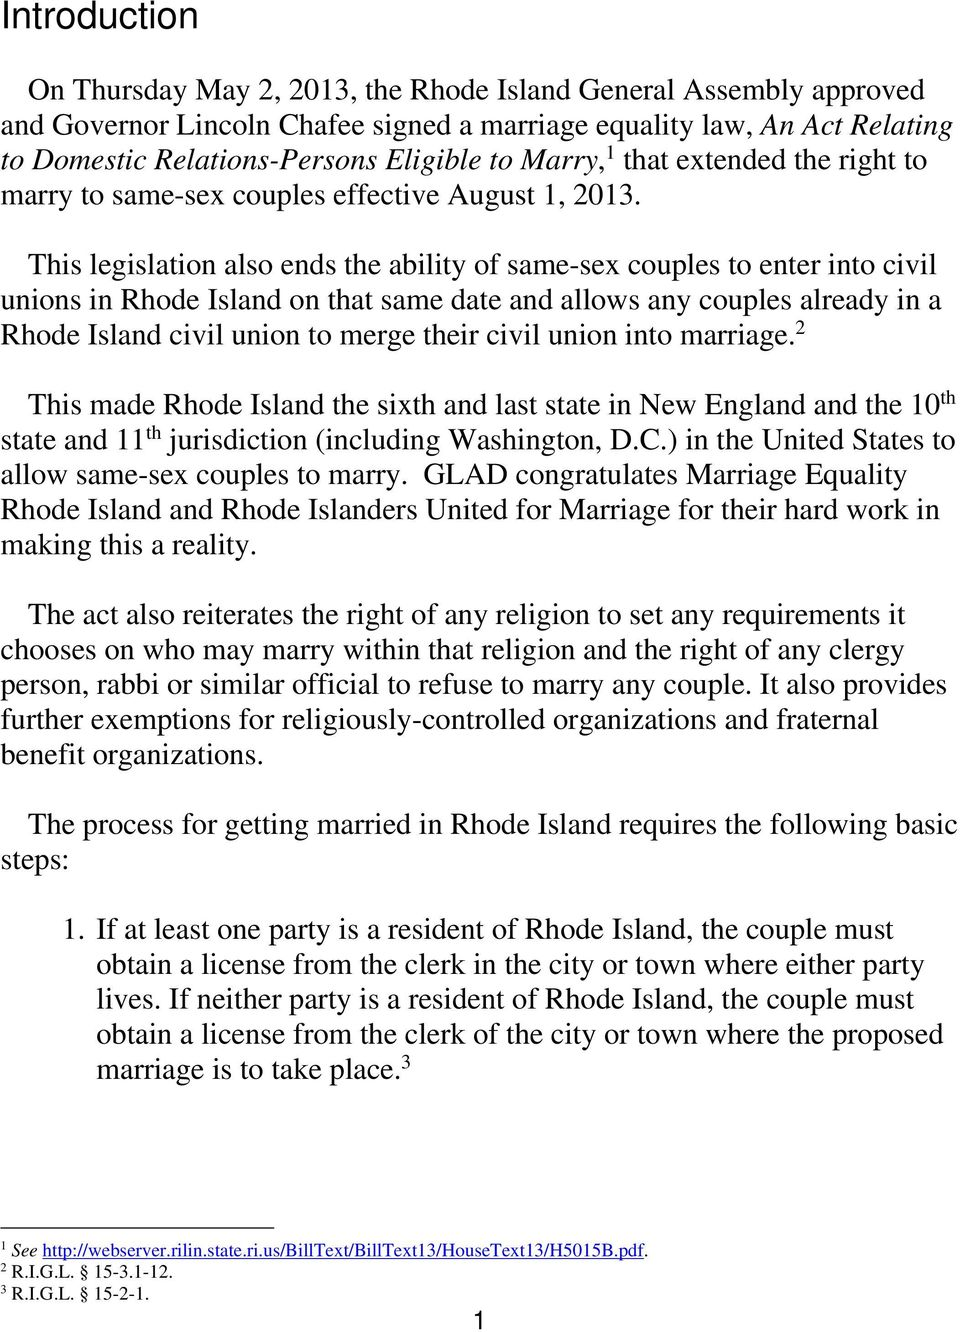 This legislation also ends the ability of same-sex couples to enter into civil unions in Rhode Island on that same date and allows any couples already in a Rhode Island civil union to merge their